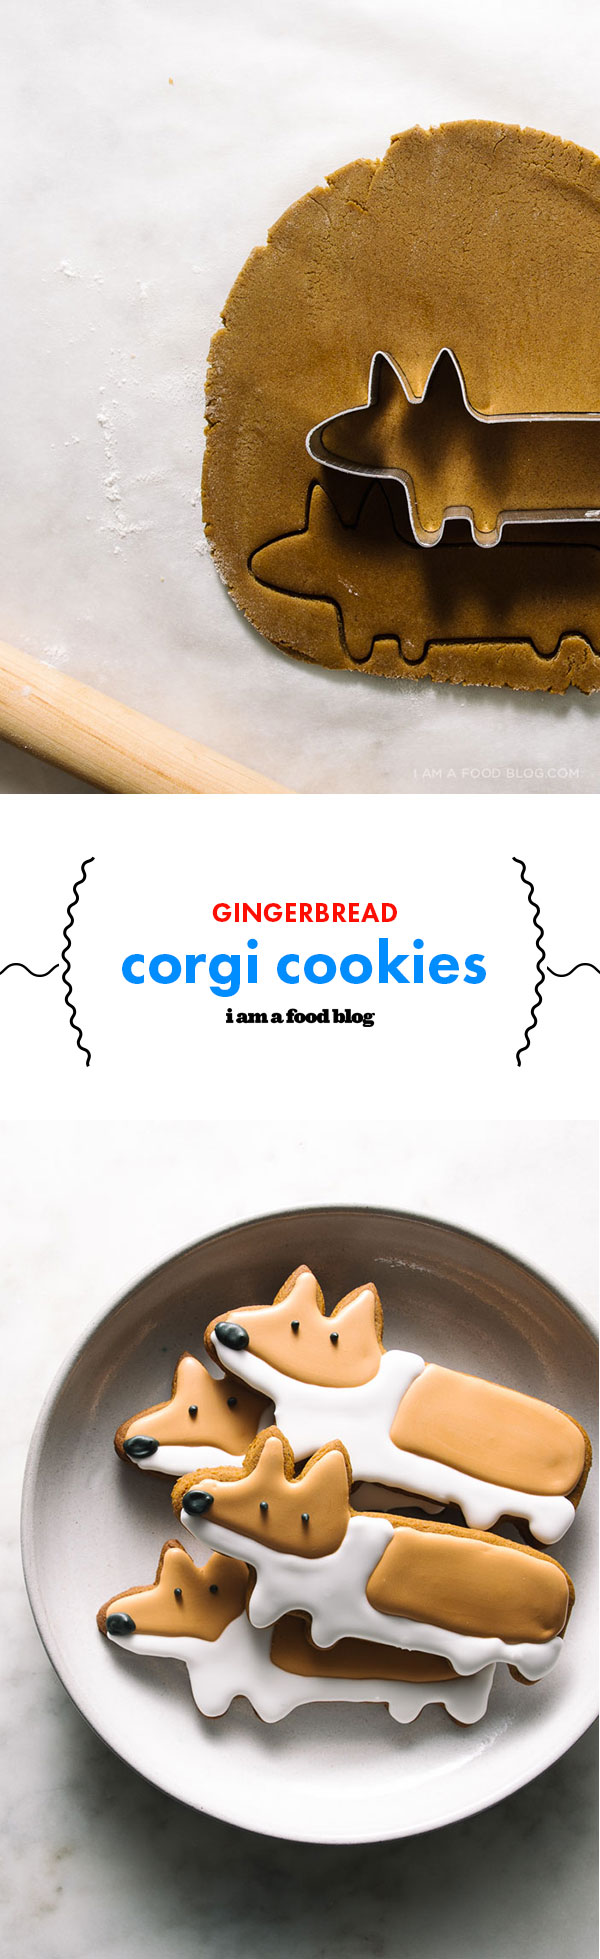 gingerbread corgi cookies | i am a food blog